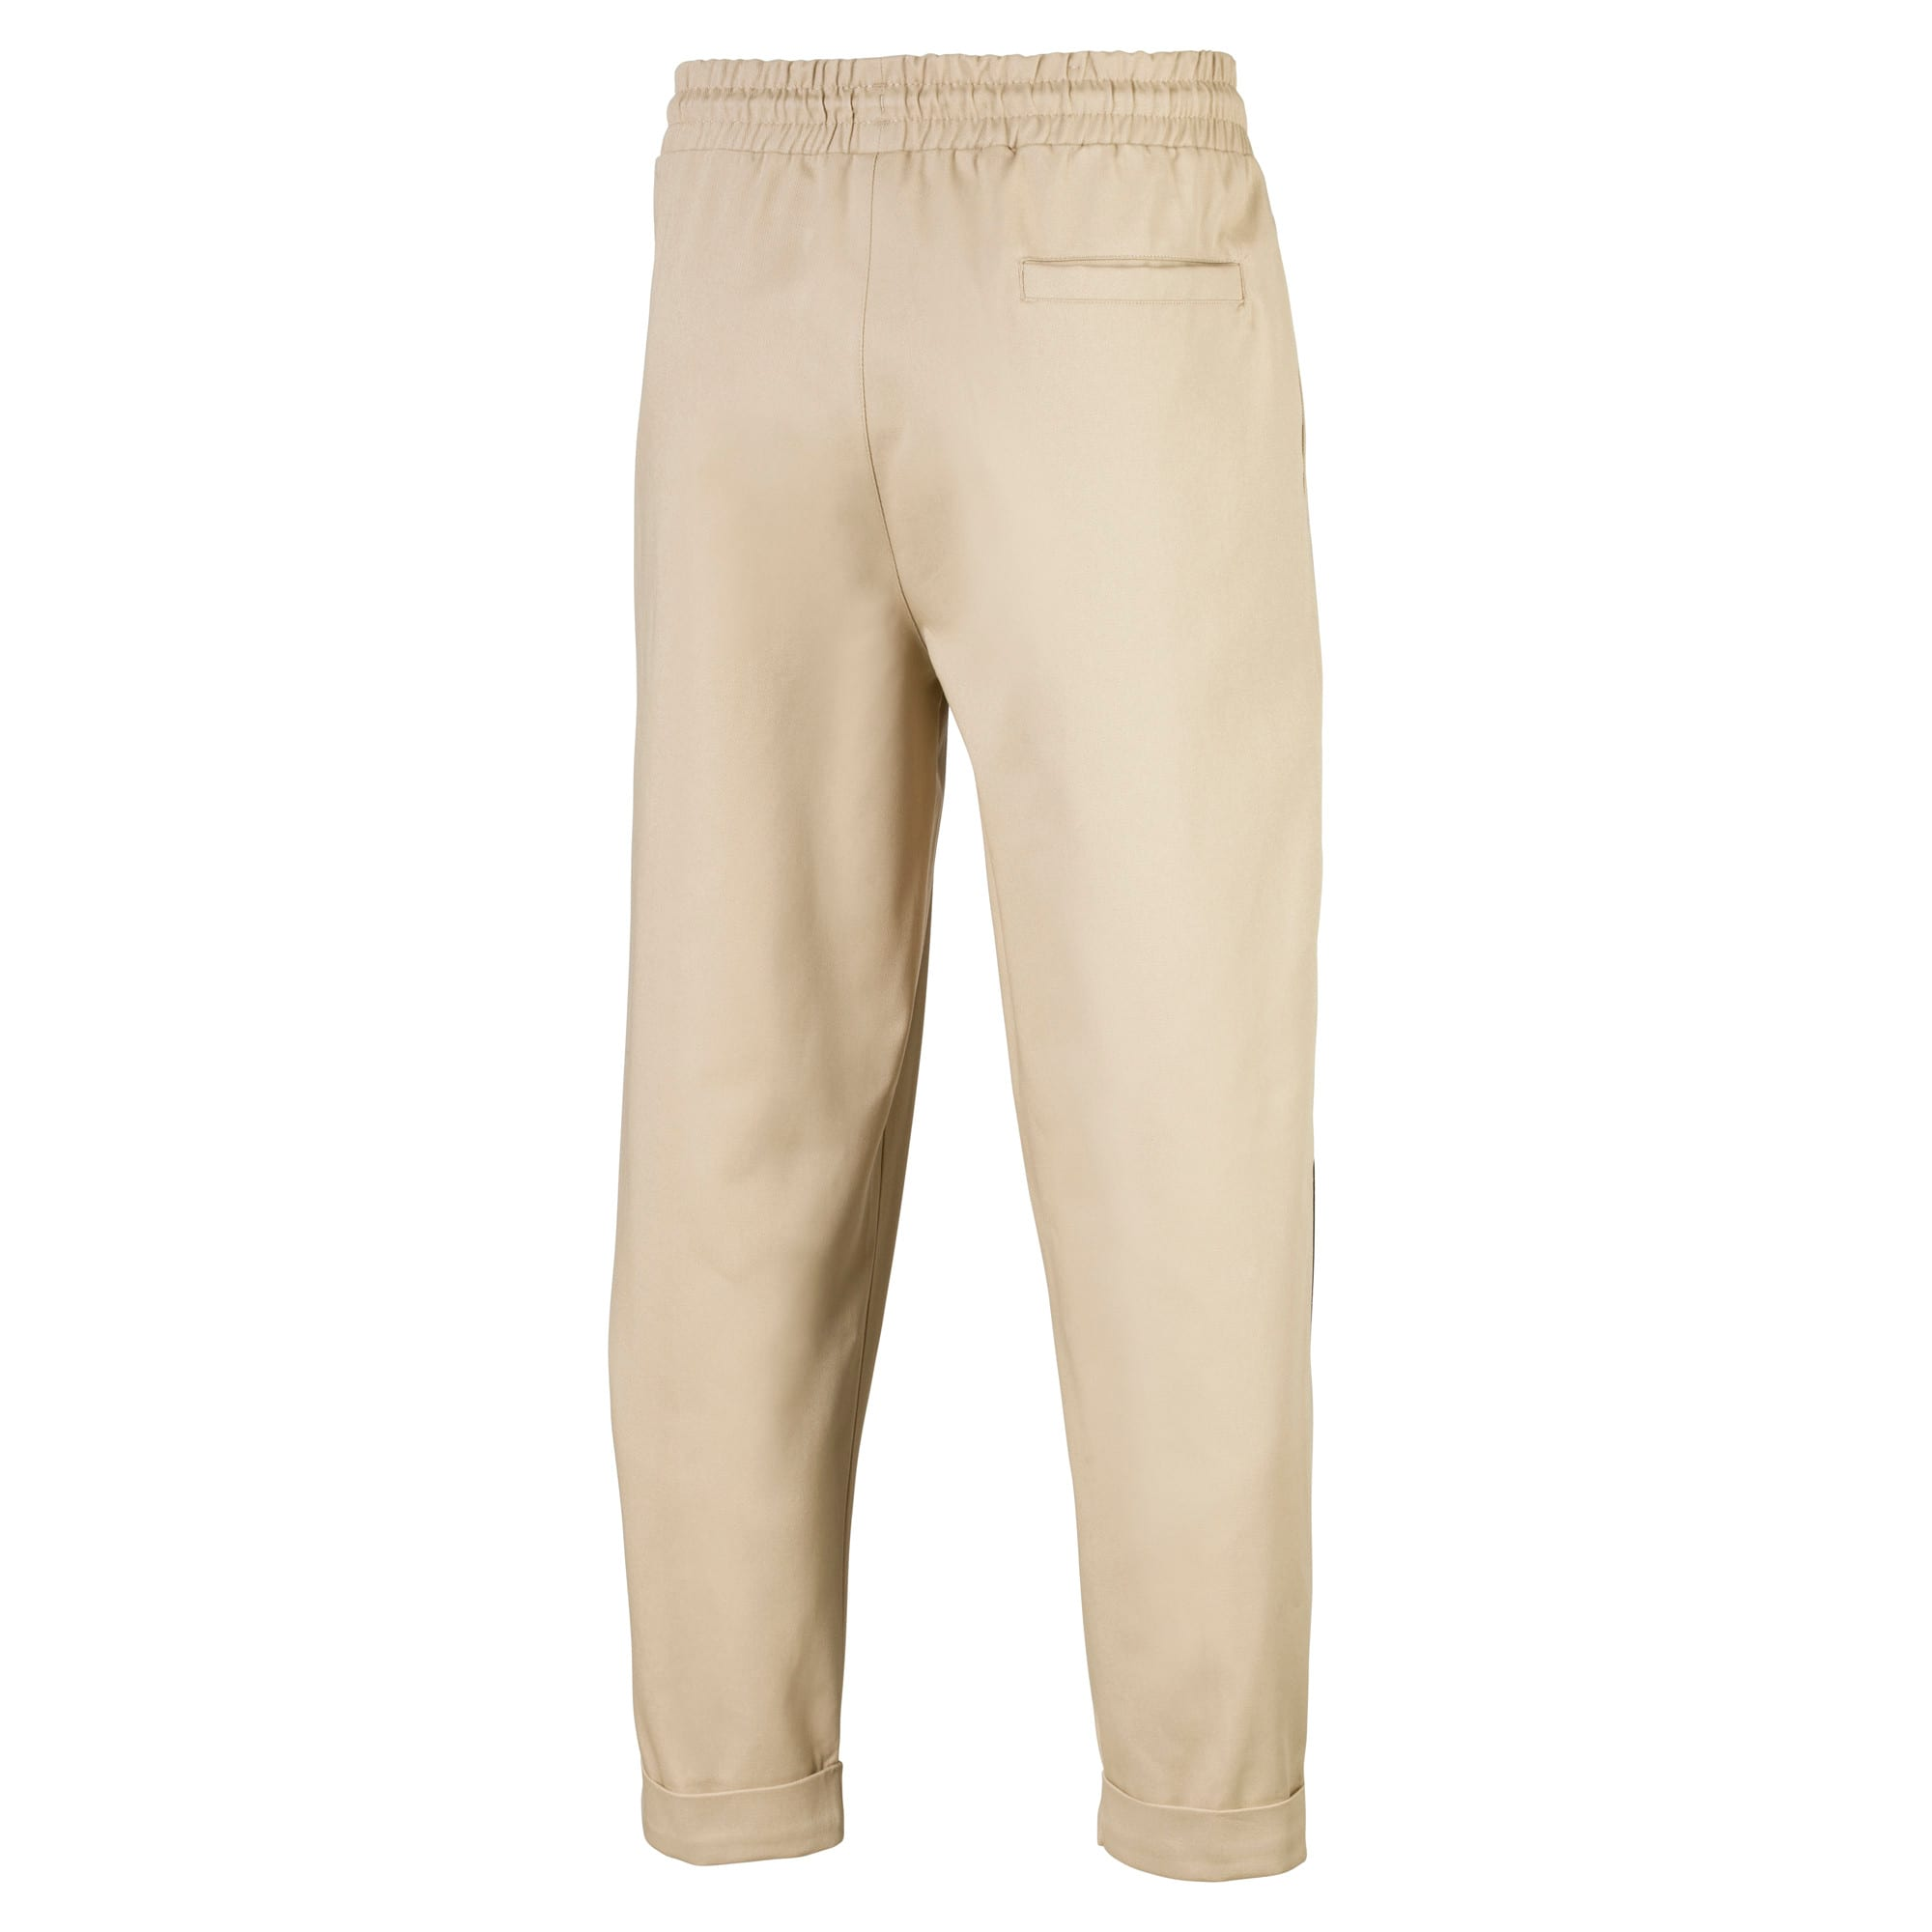 Thumbnail 2 of Evolution Chino Men's Pants, Safari, medium